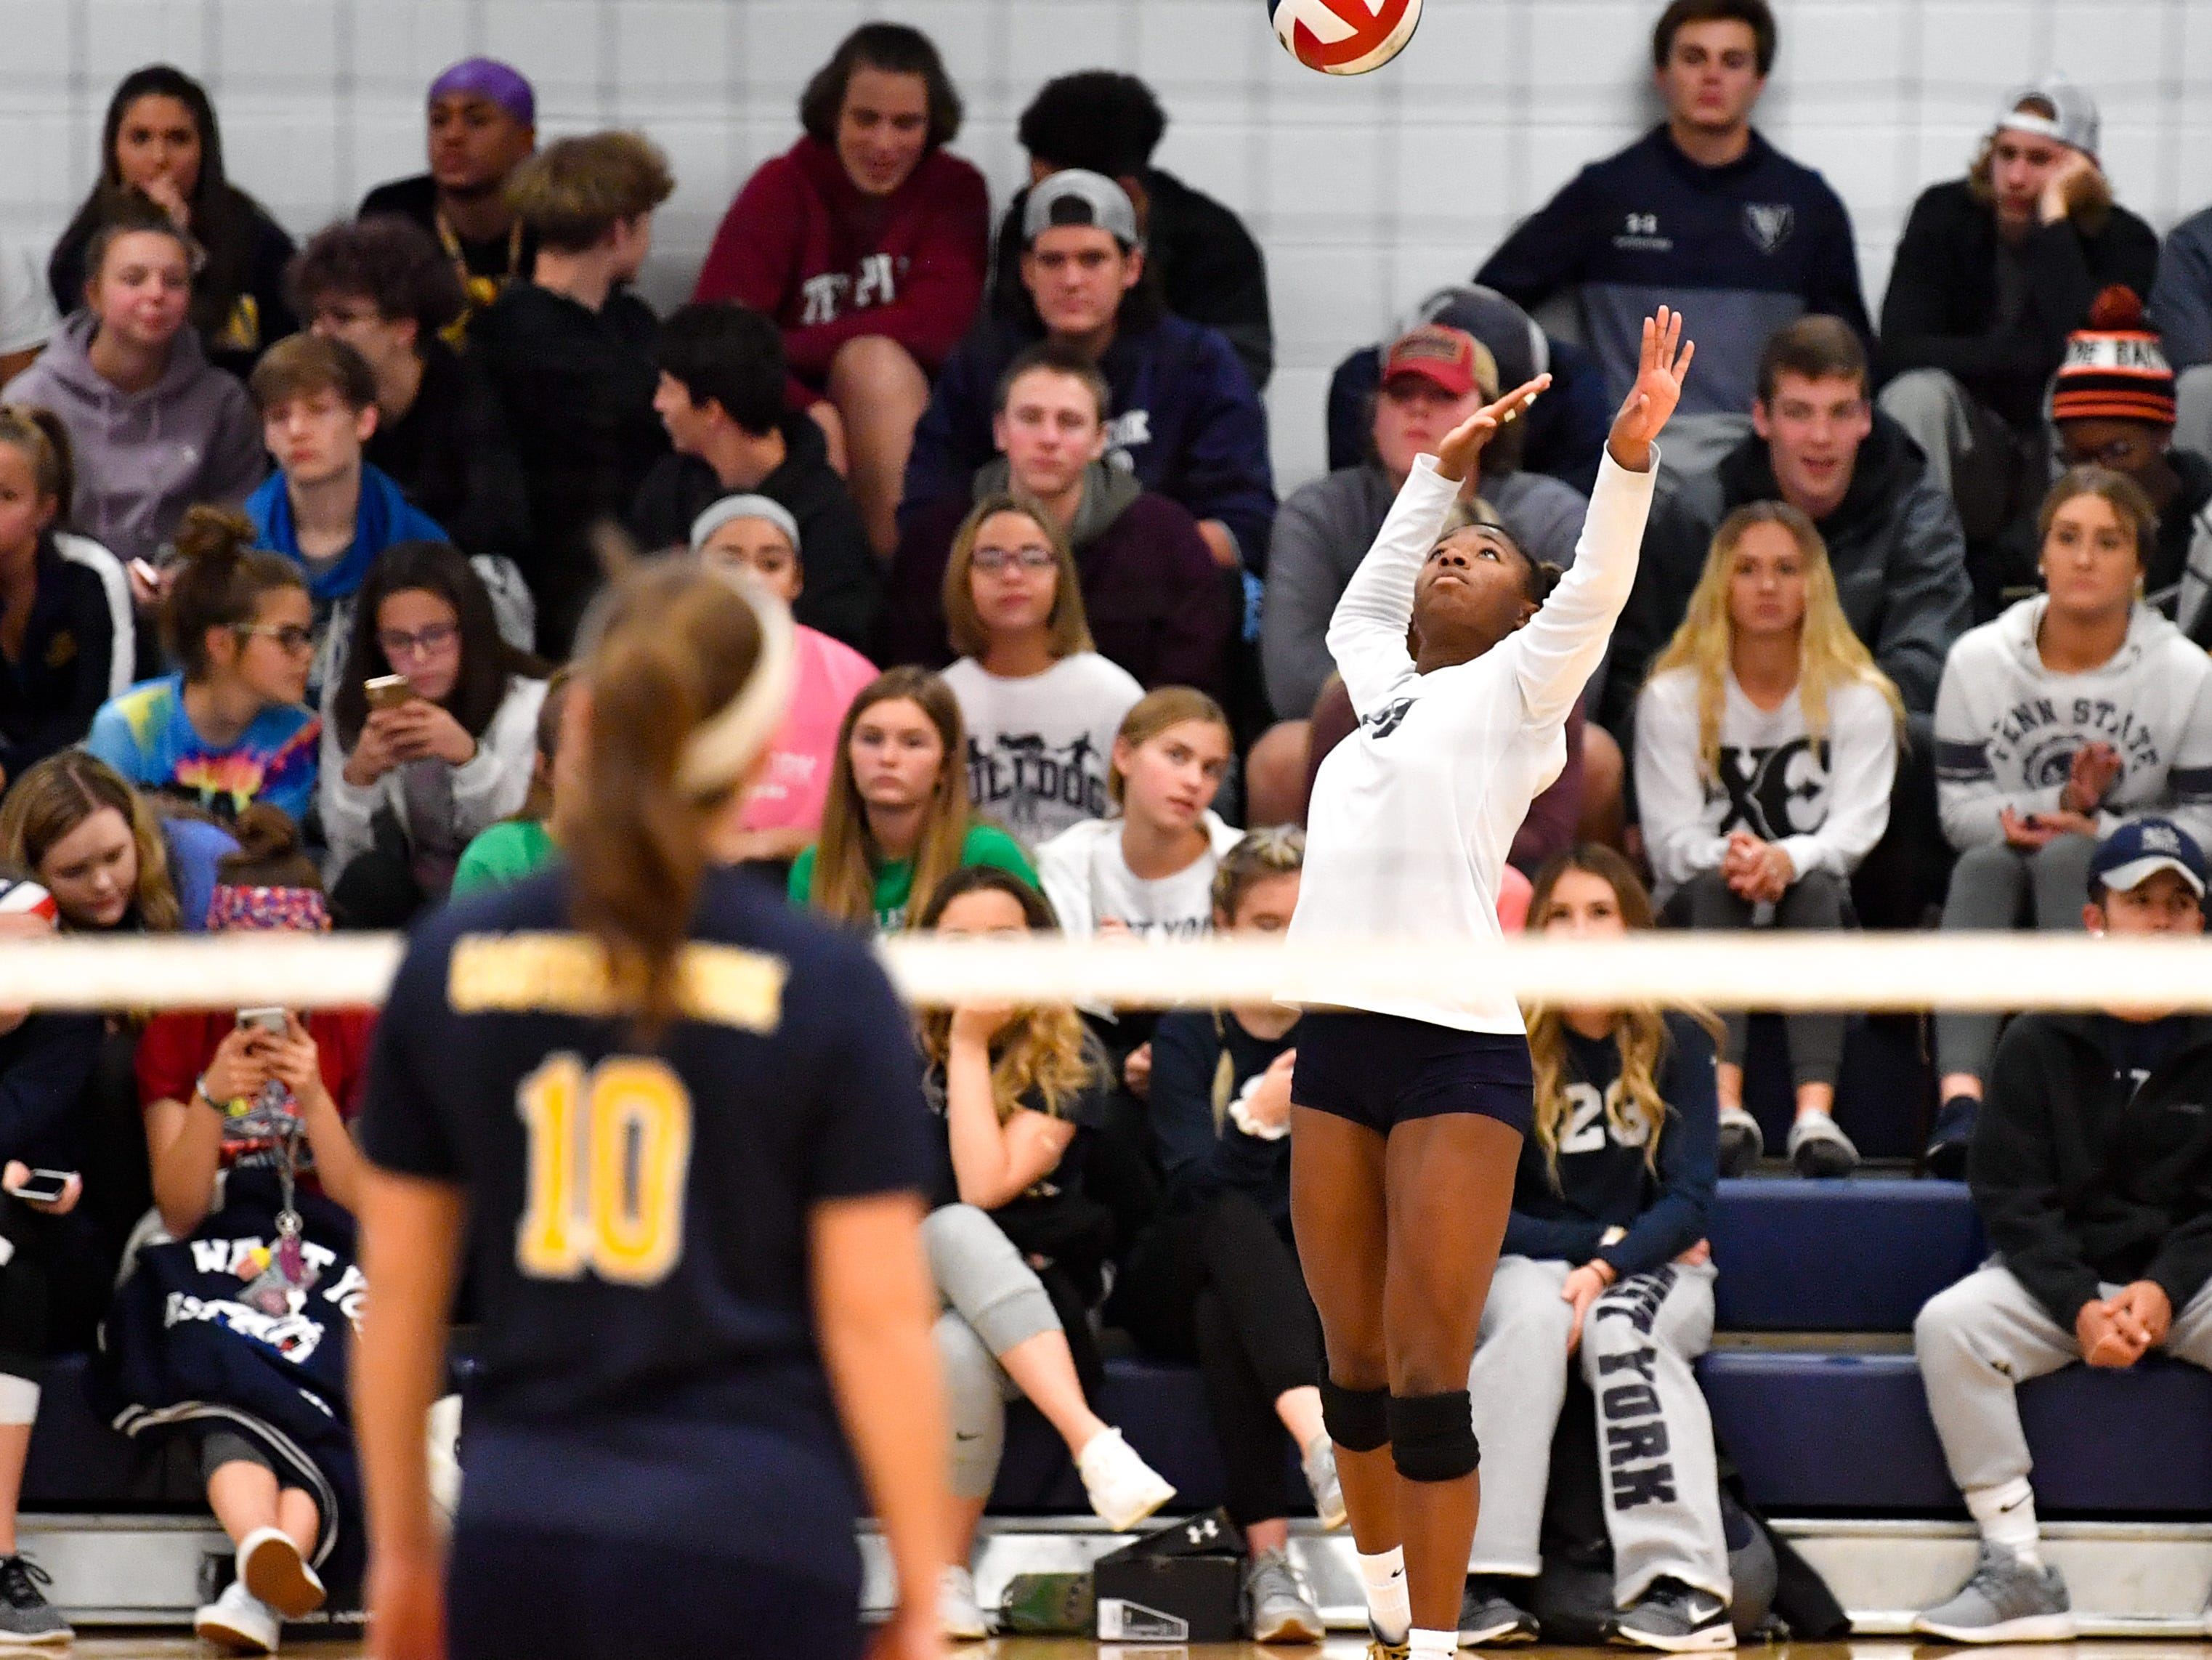 Tesia Thomas (19) serves the ball during the District 3 Class 3A girls' volleyball quarterfinals between West York and Eastern York at West York High School, October 30, 2018. The Bulldogs defeated the Golden Knights 3-0.